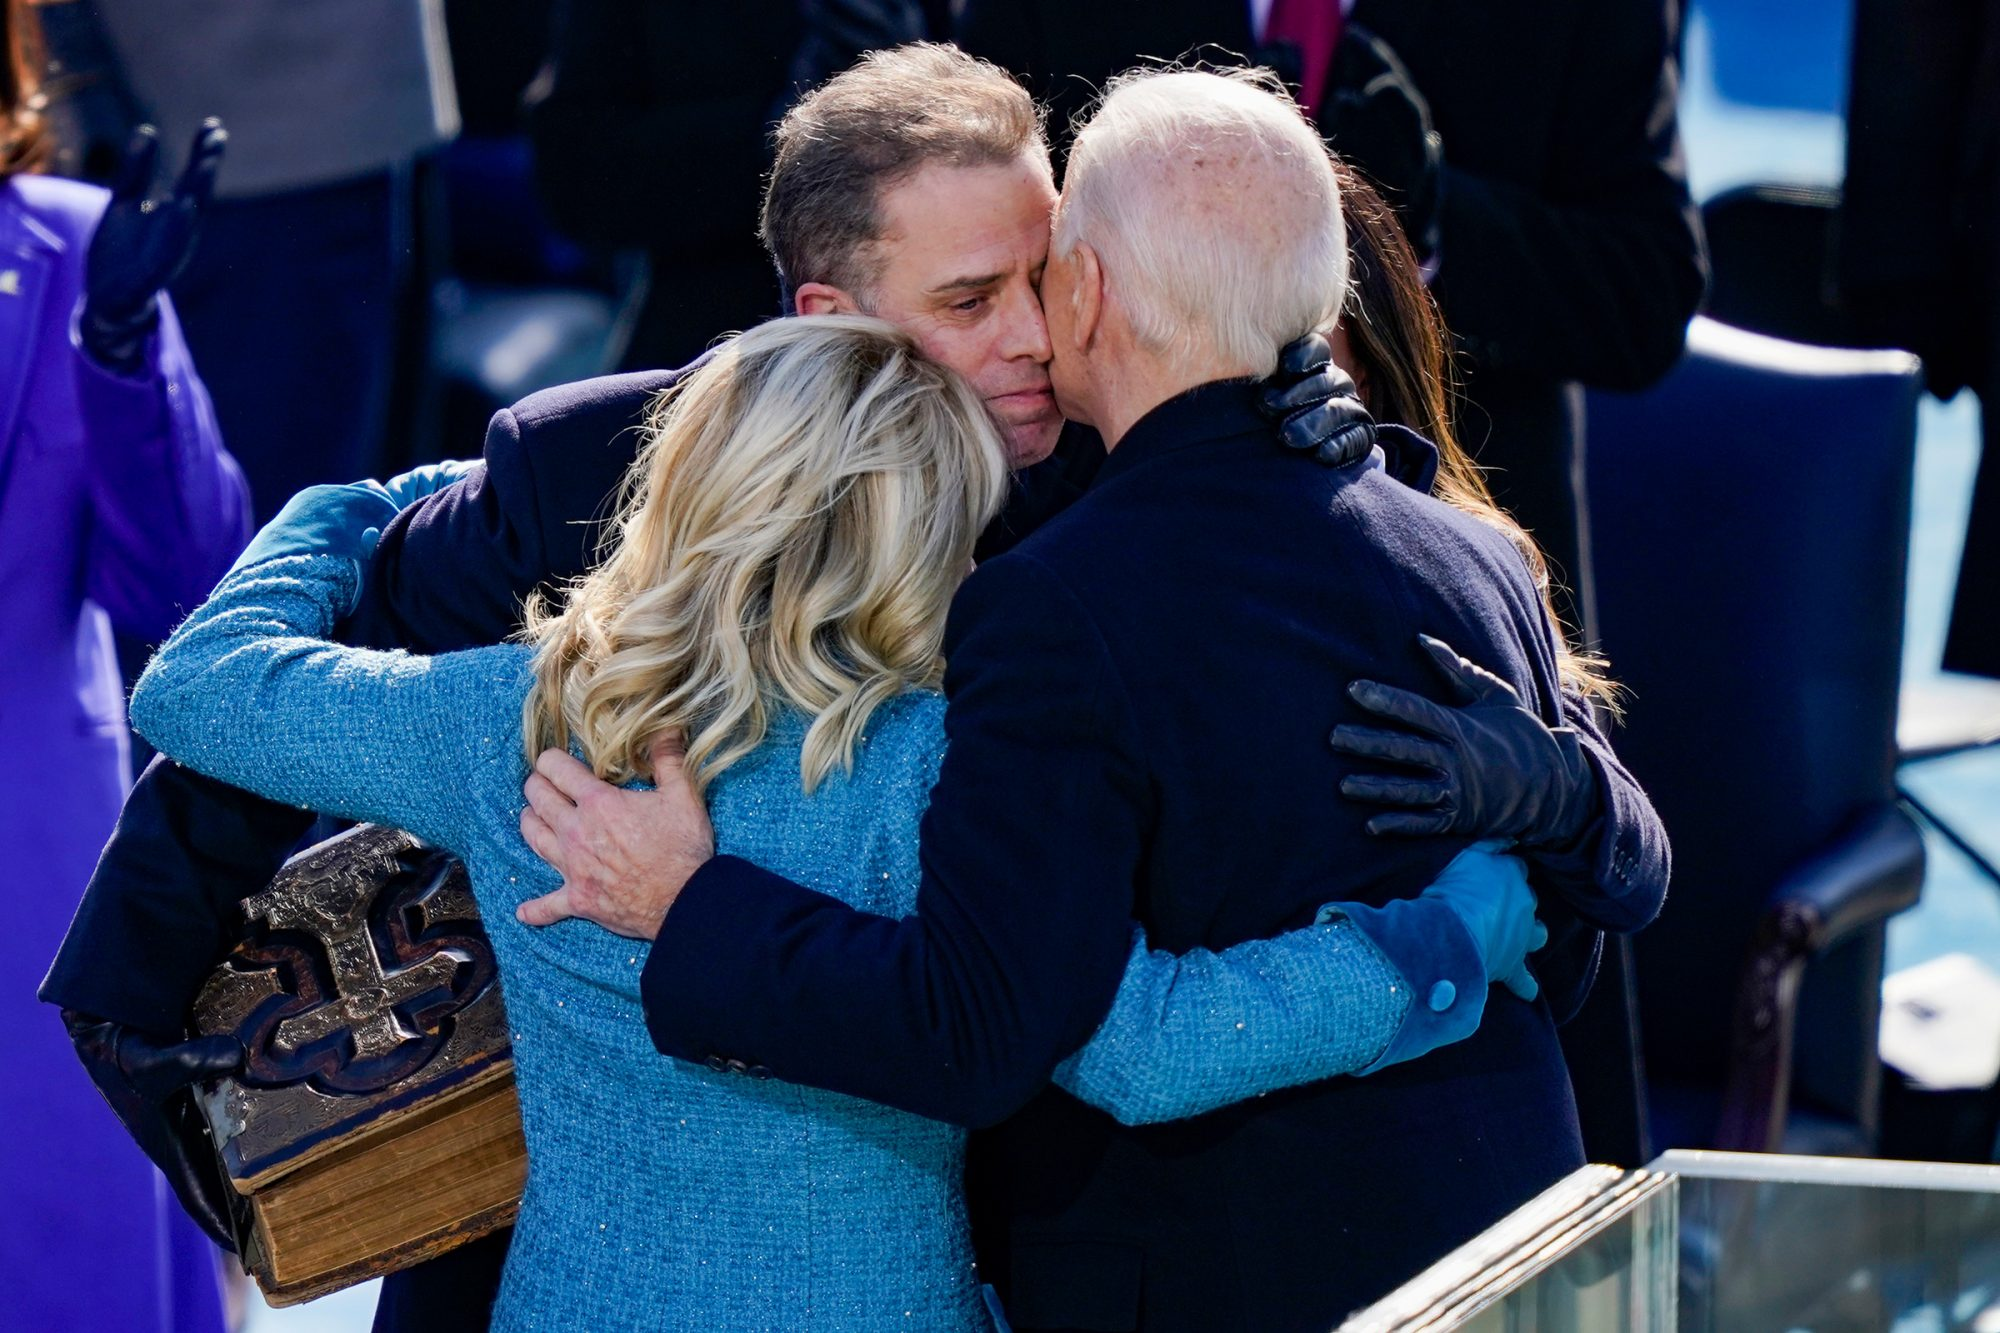 U.S. President Joe Biden embraces his family First Lady Dr. Jill Biden, son Hunter Biden and daughter Ashley after being sworn in during his inauguation on the West Front of the U.S. Capitol on January 20, 2021 in Washington, DC